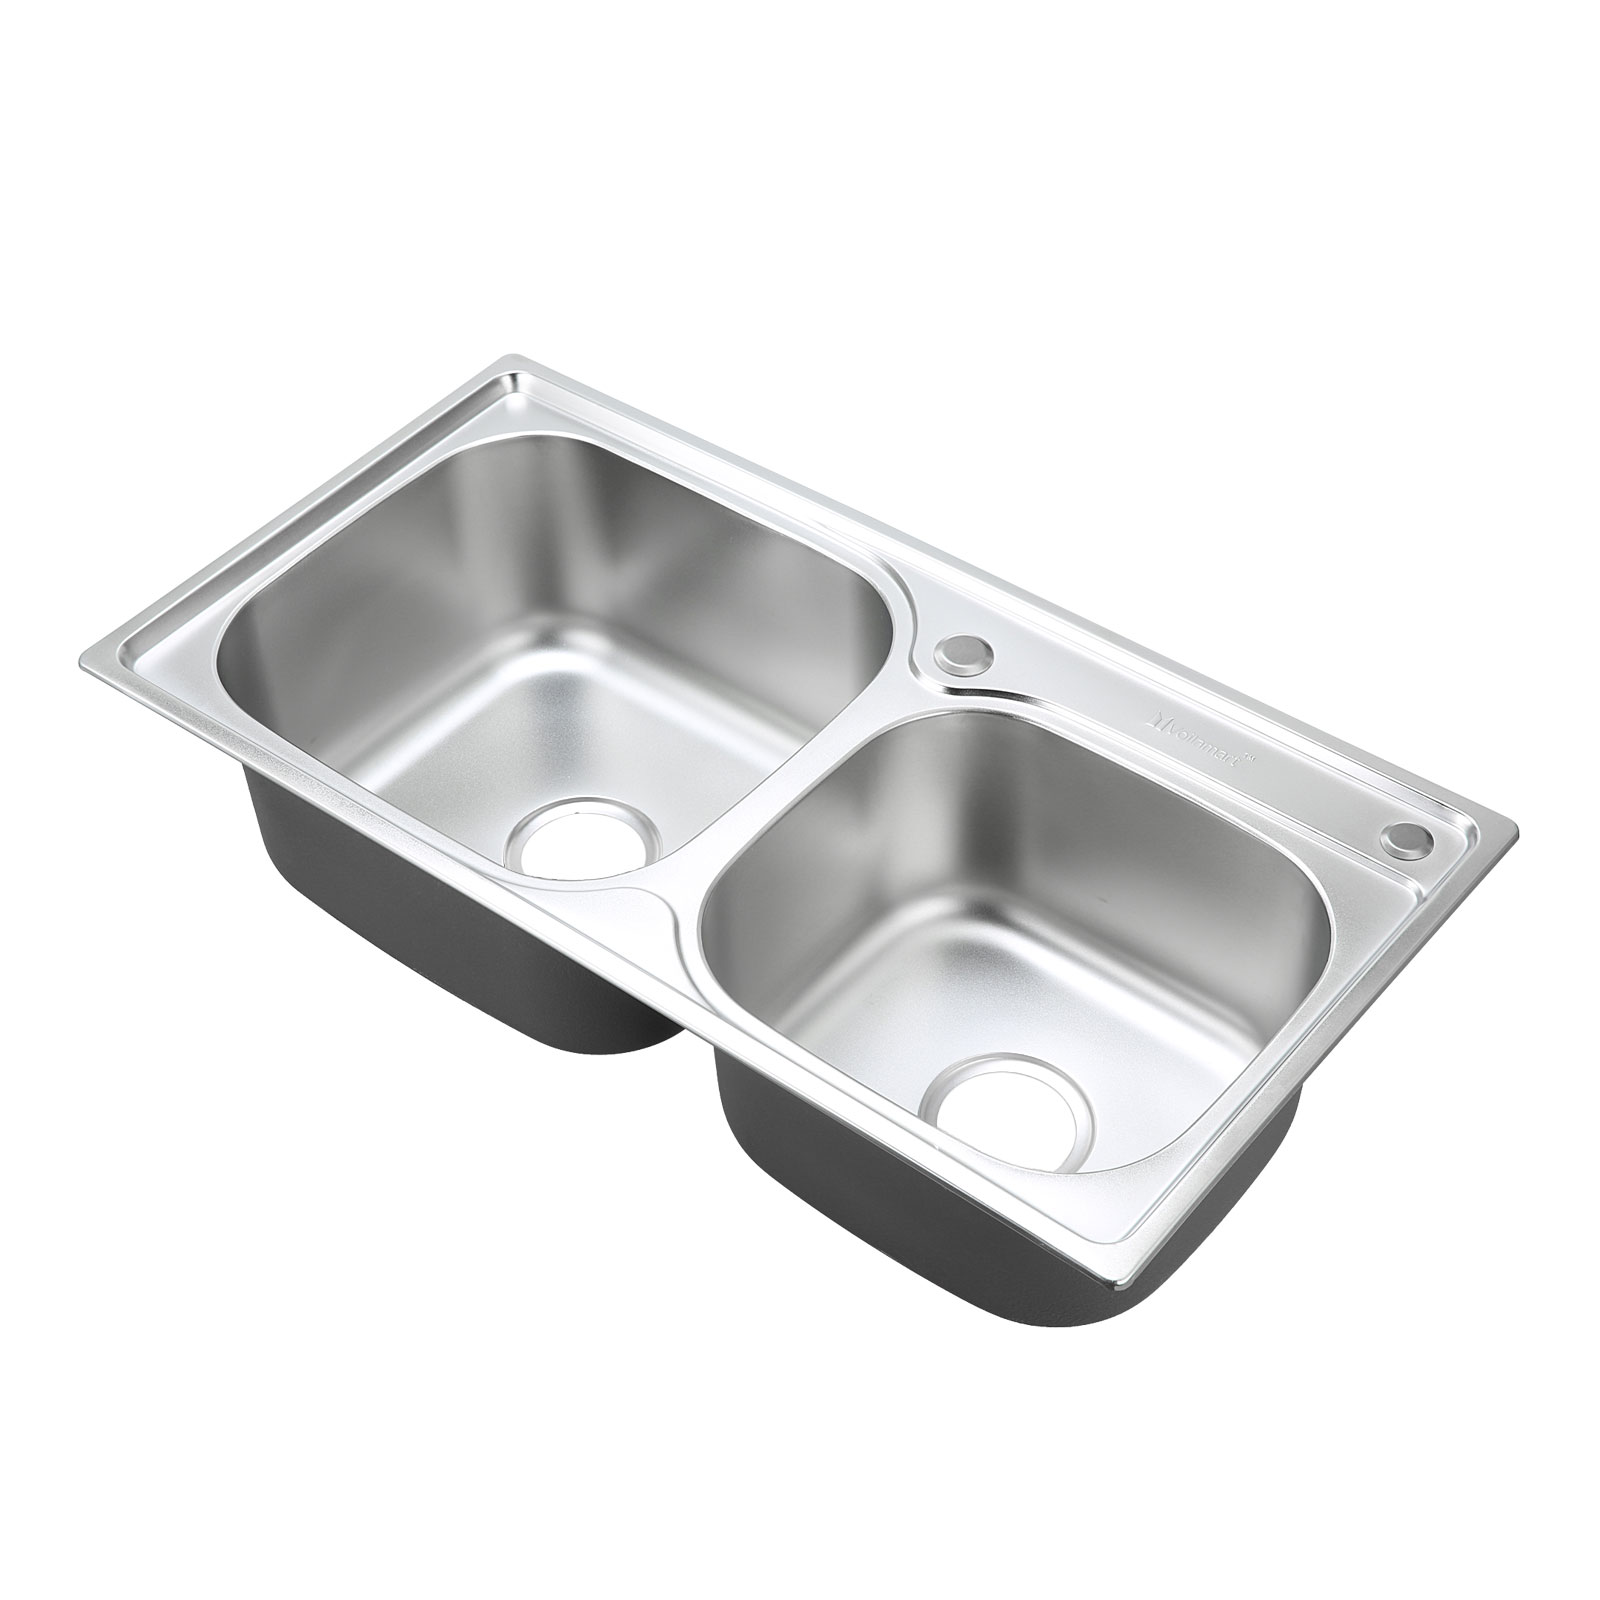 ... Stainless Steel Sink 830x430mm Kitchen Laundry Topmount Double Bowl